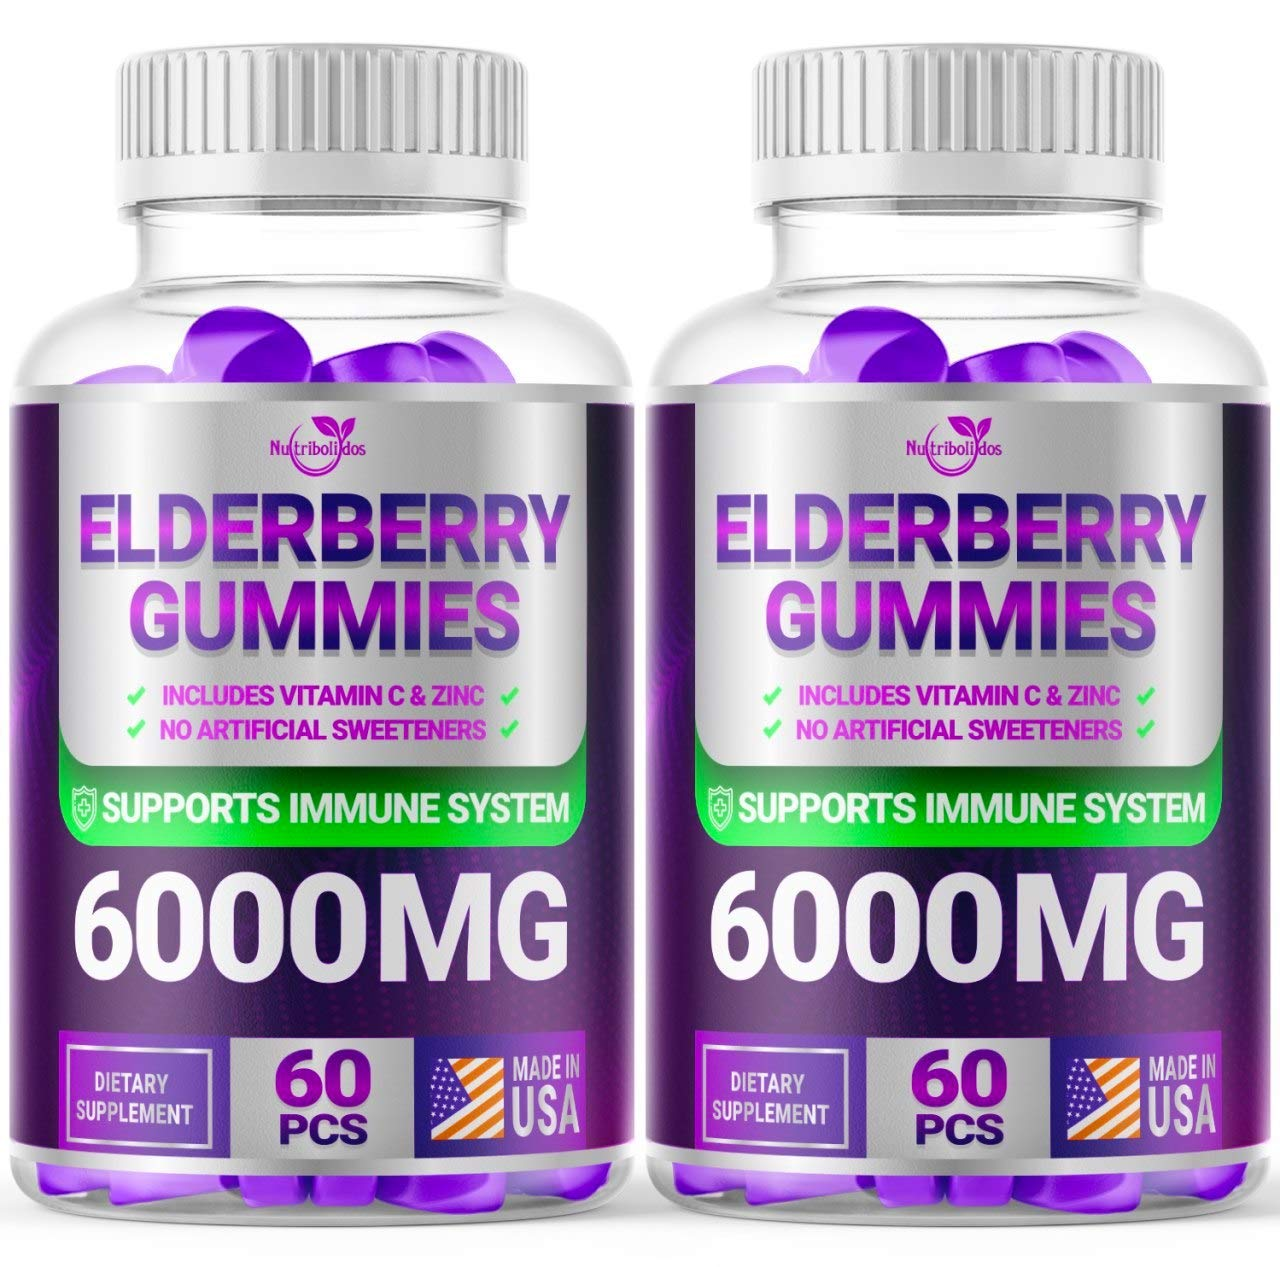 (2 Pack | 120 Gummies) Elderberry Gummies for Adults Kids Toddlers - Herbal Supplement for Immune Support, Skin Health - Powerful Antioxidant | - Made in USA